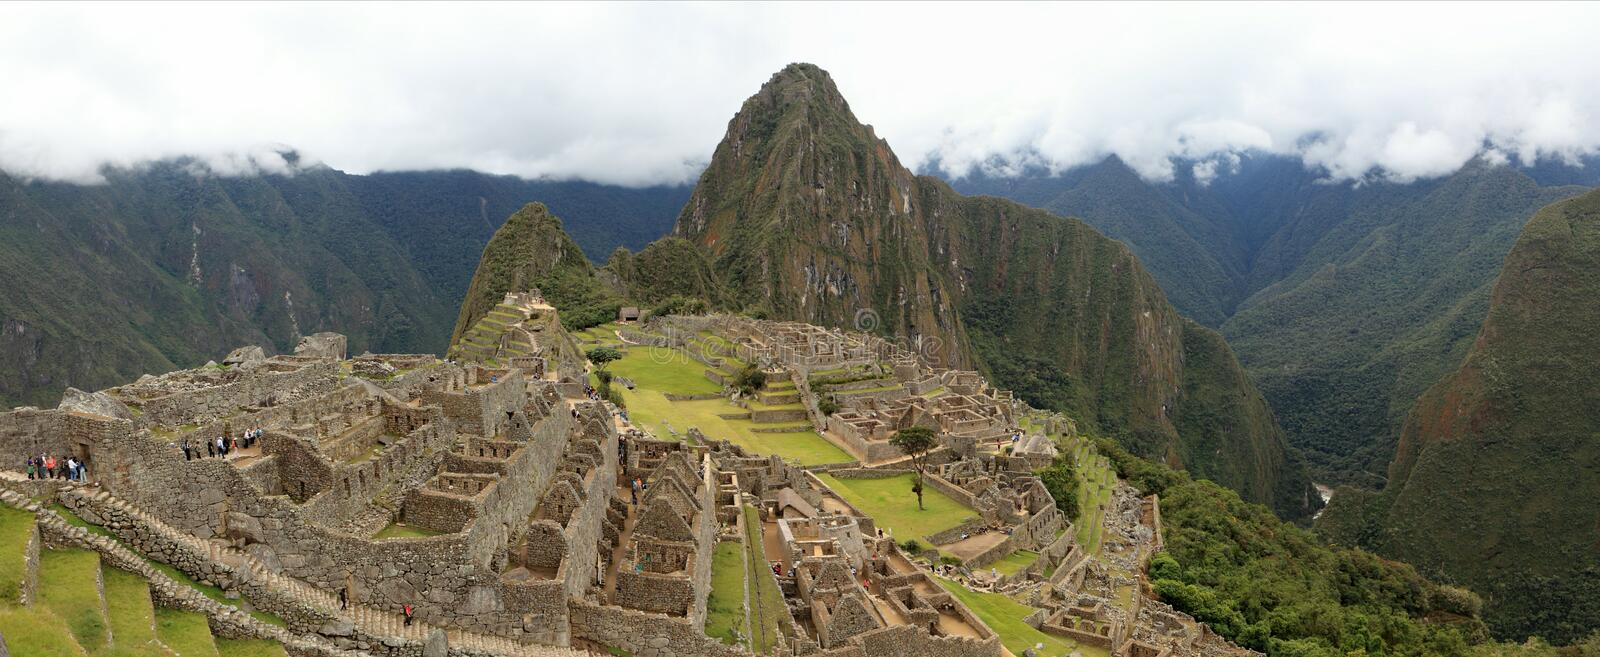 Download Machu Picchu The Hidden Inca City In The Clouds Stock Image - Image: 33620117